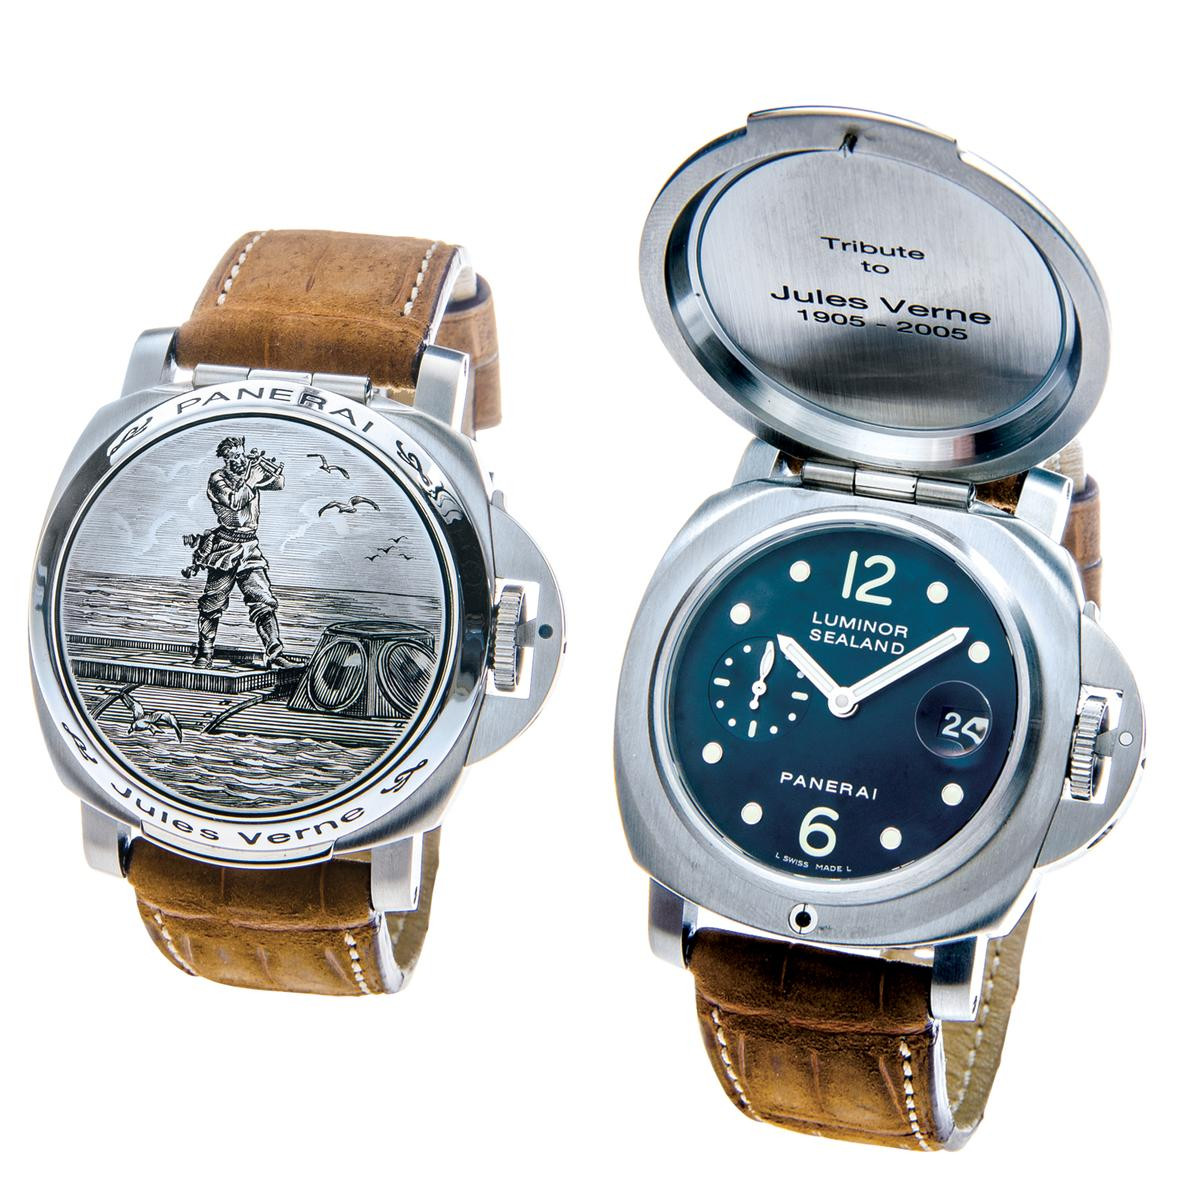 Like-New Panerai Limited Edition Jules Verne Sealand PAM216